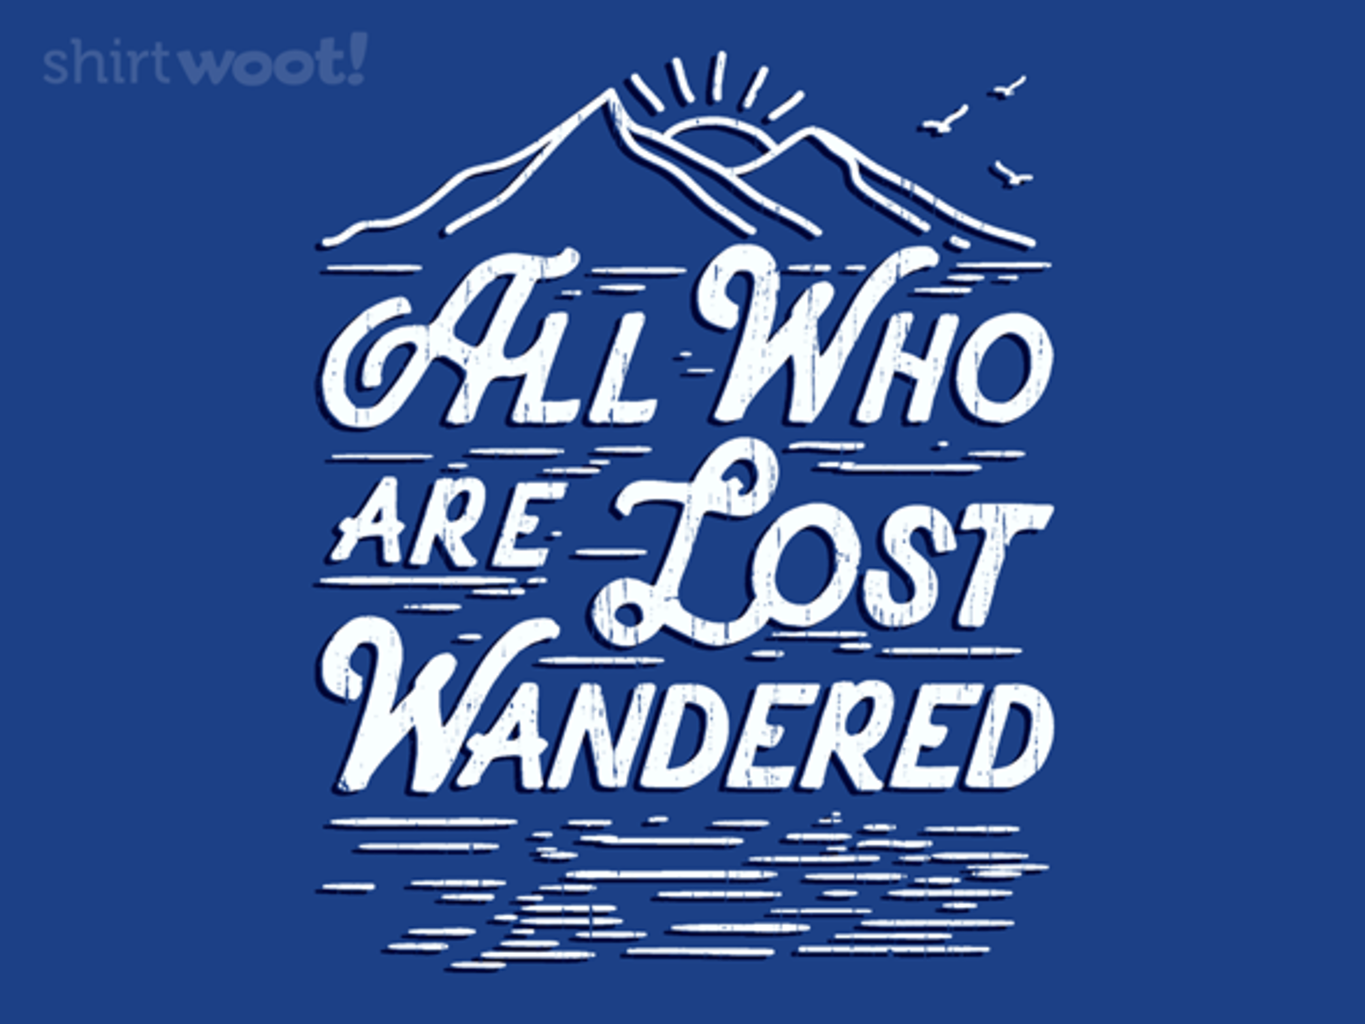 Woot!: Not All Who Wander Are Lost - $15.00 + Free shipping